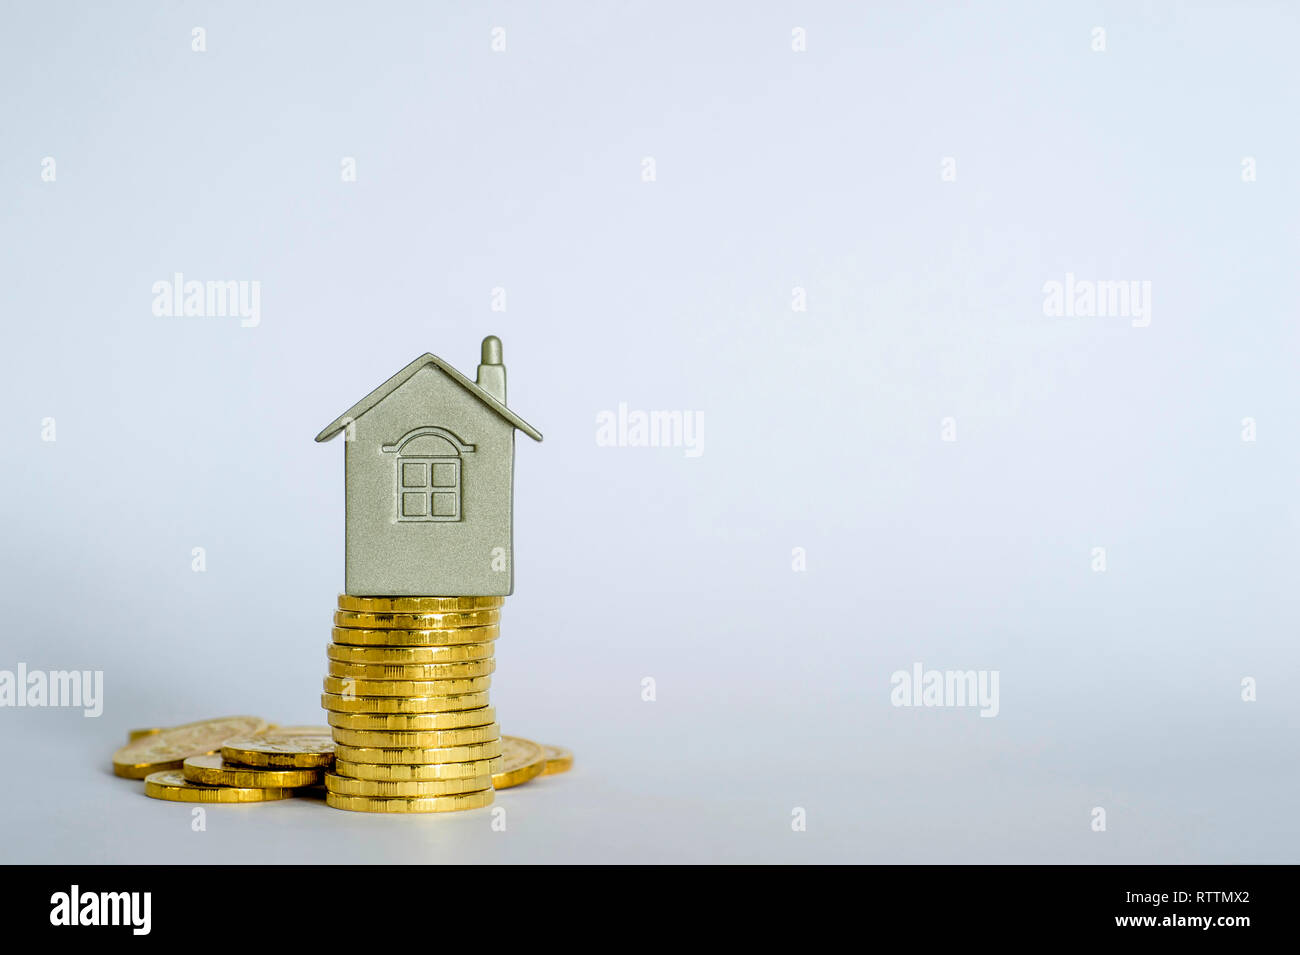 The house symbol on a stack of yellow shiny coins on a light gray blue background. Real estate purchase offer concept. Copy space. - Stock Image